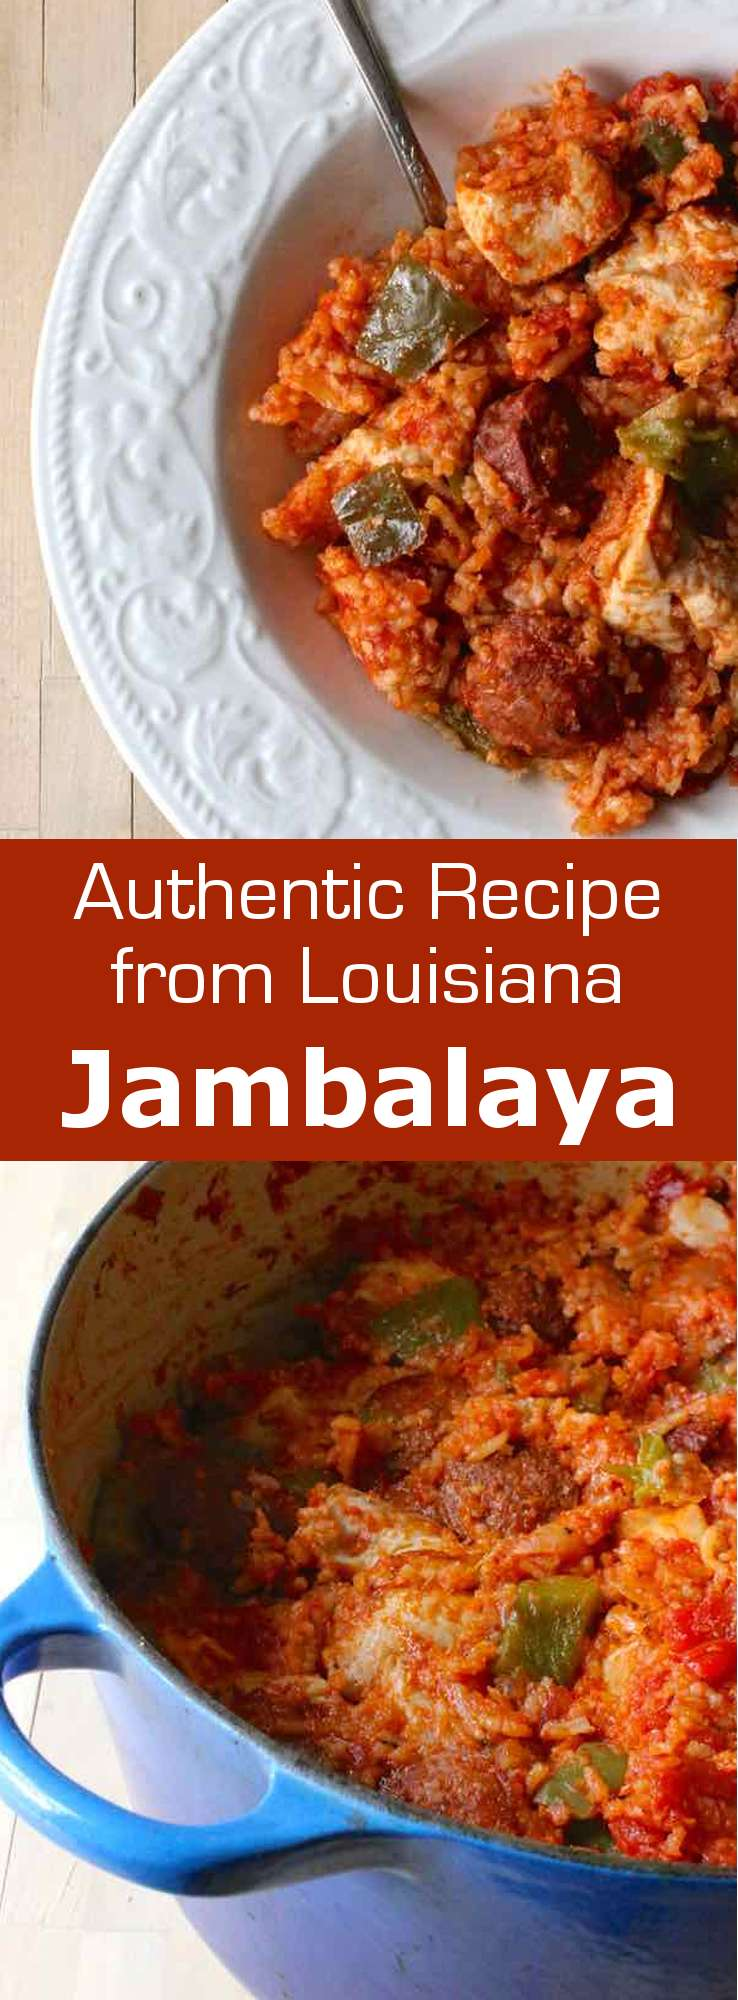 Jambalaya is a delicious traditional one-pot meal from Louisiana that is composed of rice mixed with vegetables and meat or seafood. #Louisiana #MardiGras #Creole #Cajun #196flavors